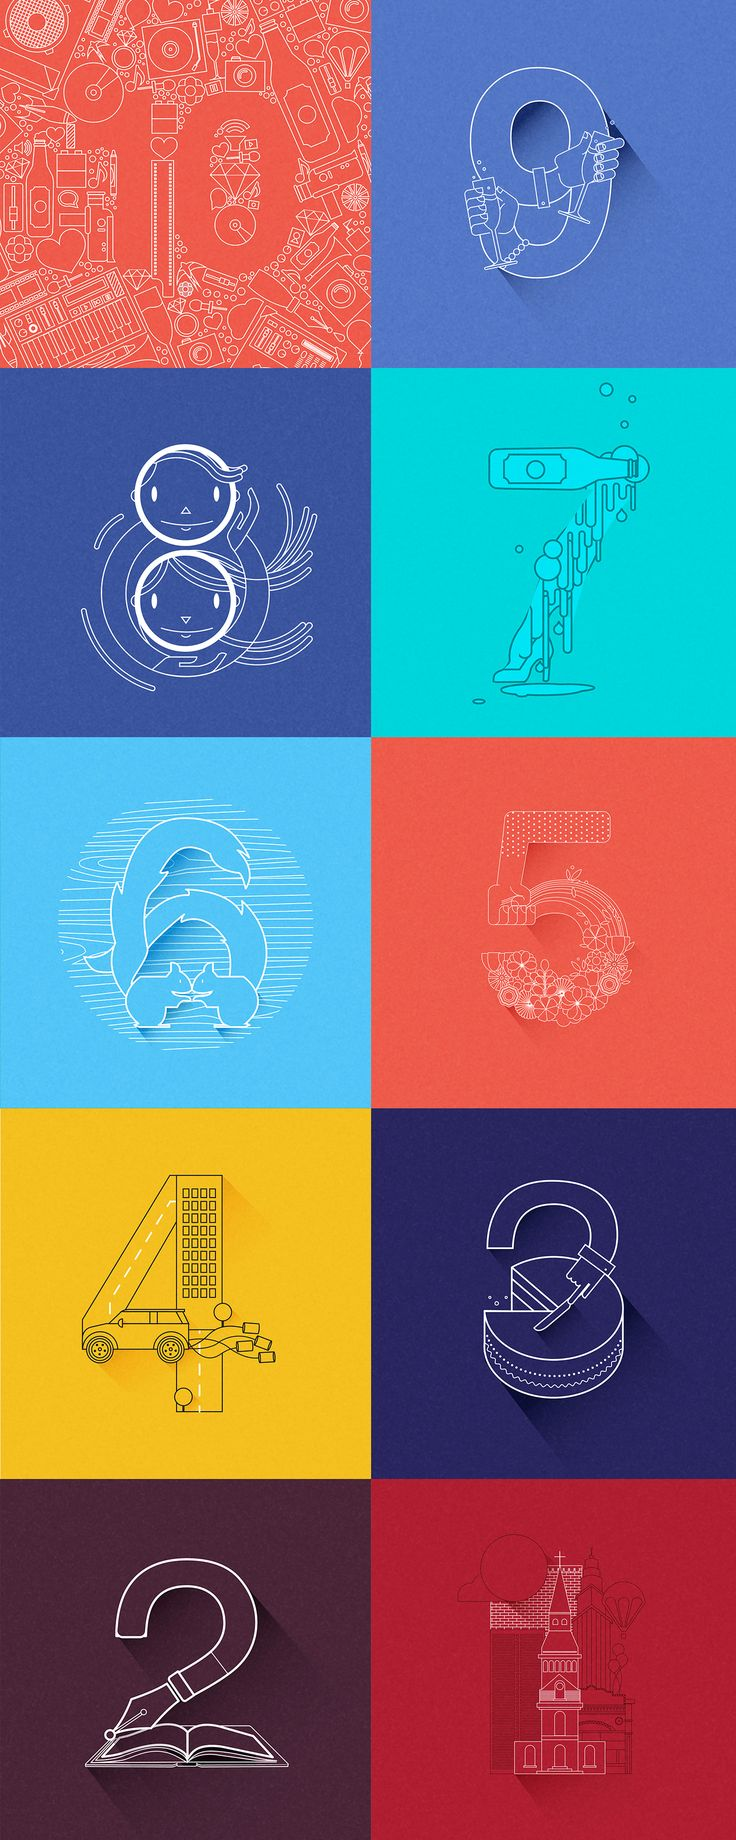 362 best Lettering & Type images on Pinterest | Typography, Graphics ...